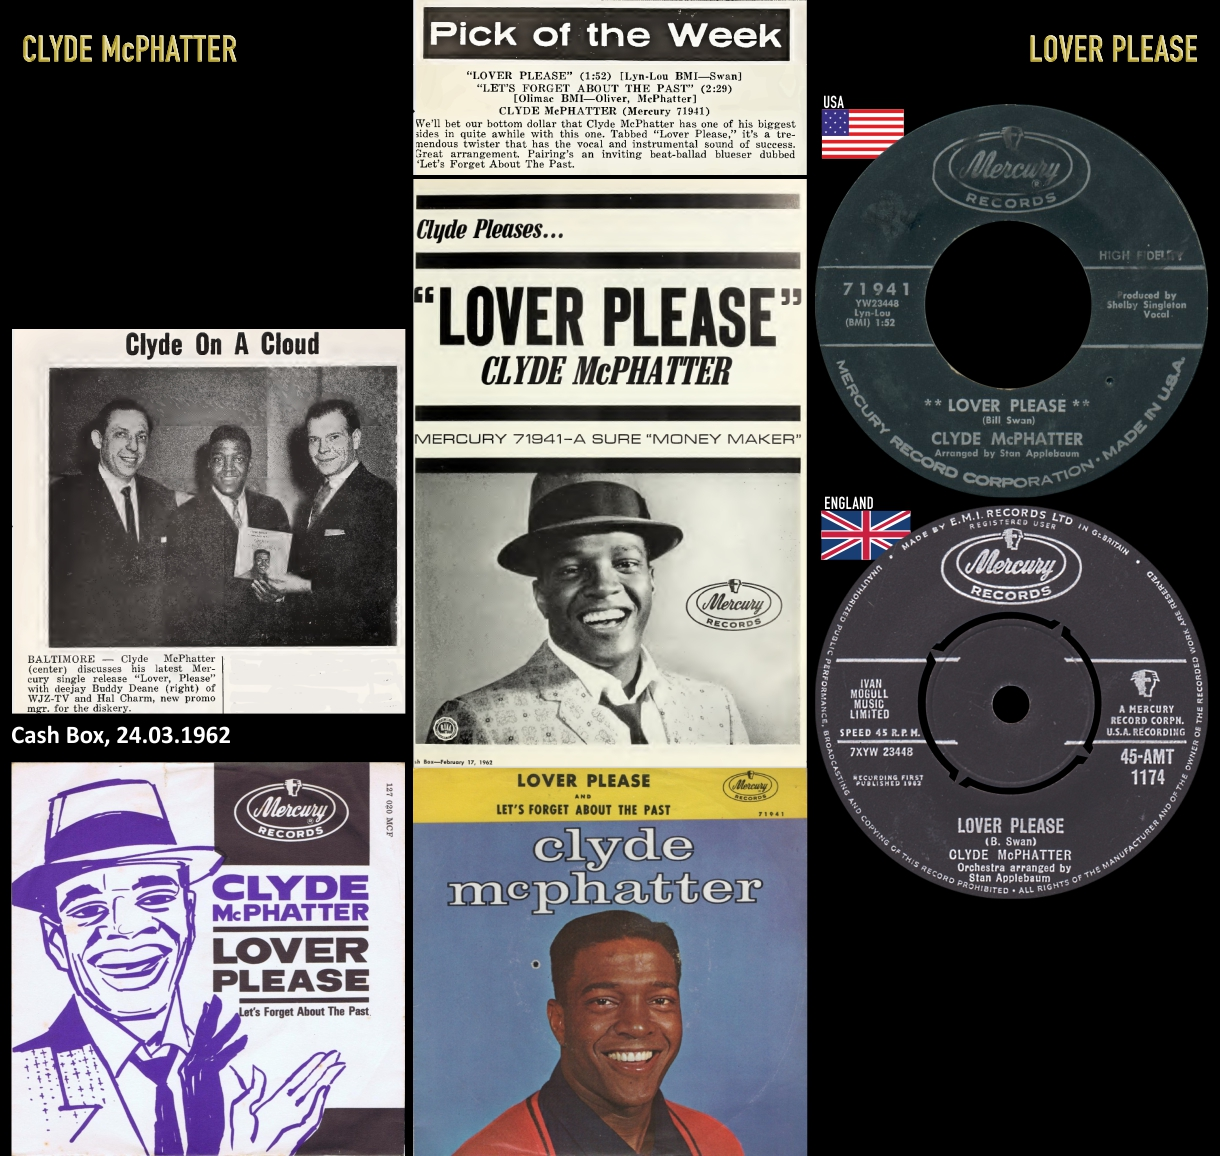 620303_Clyde McPhatter_Lover Please